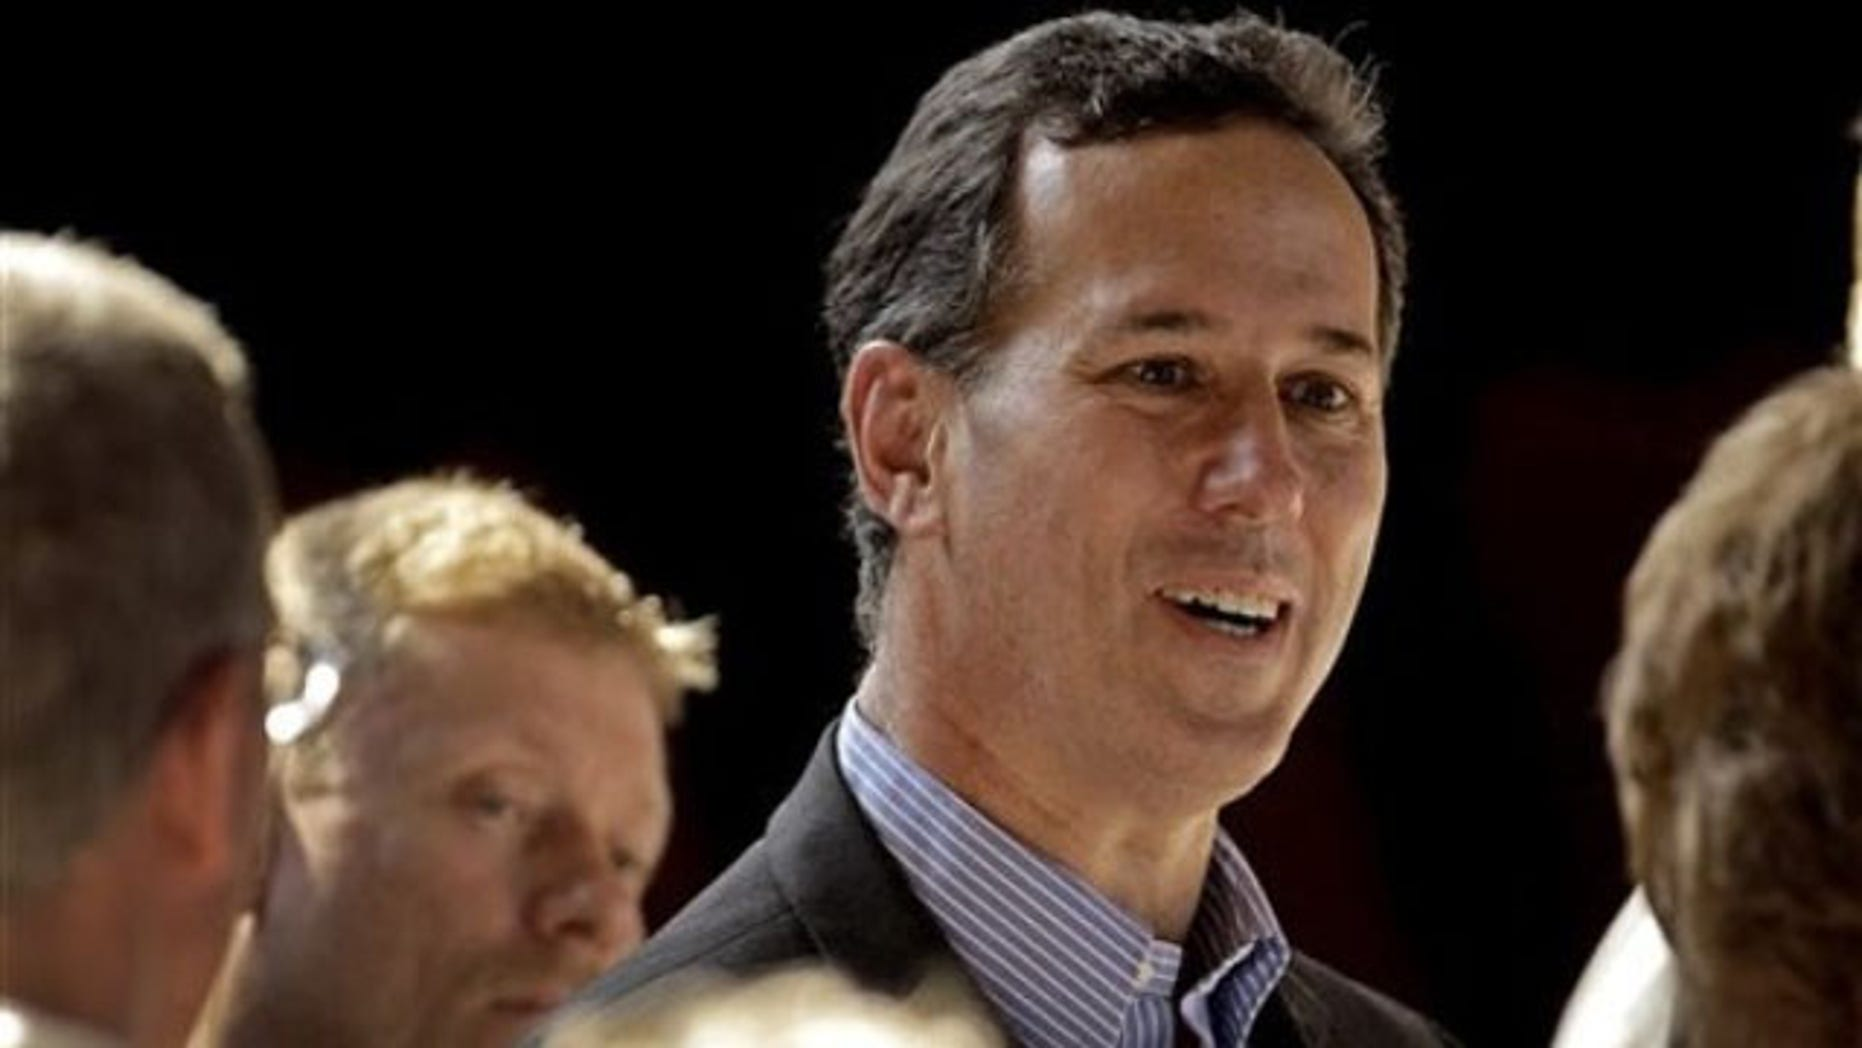 March 9, 2012: Rick Santorum greets supporters during a rally in Topeka, Kan.